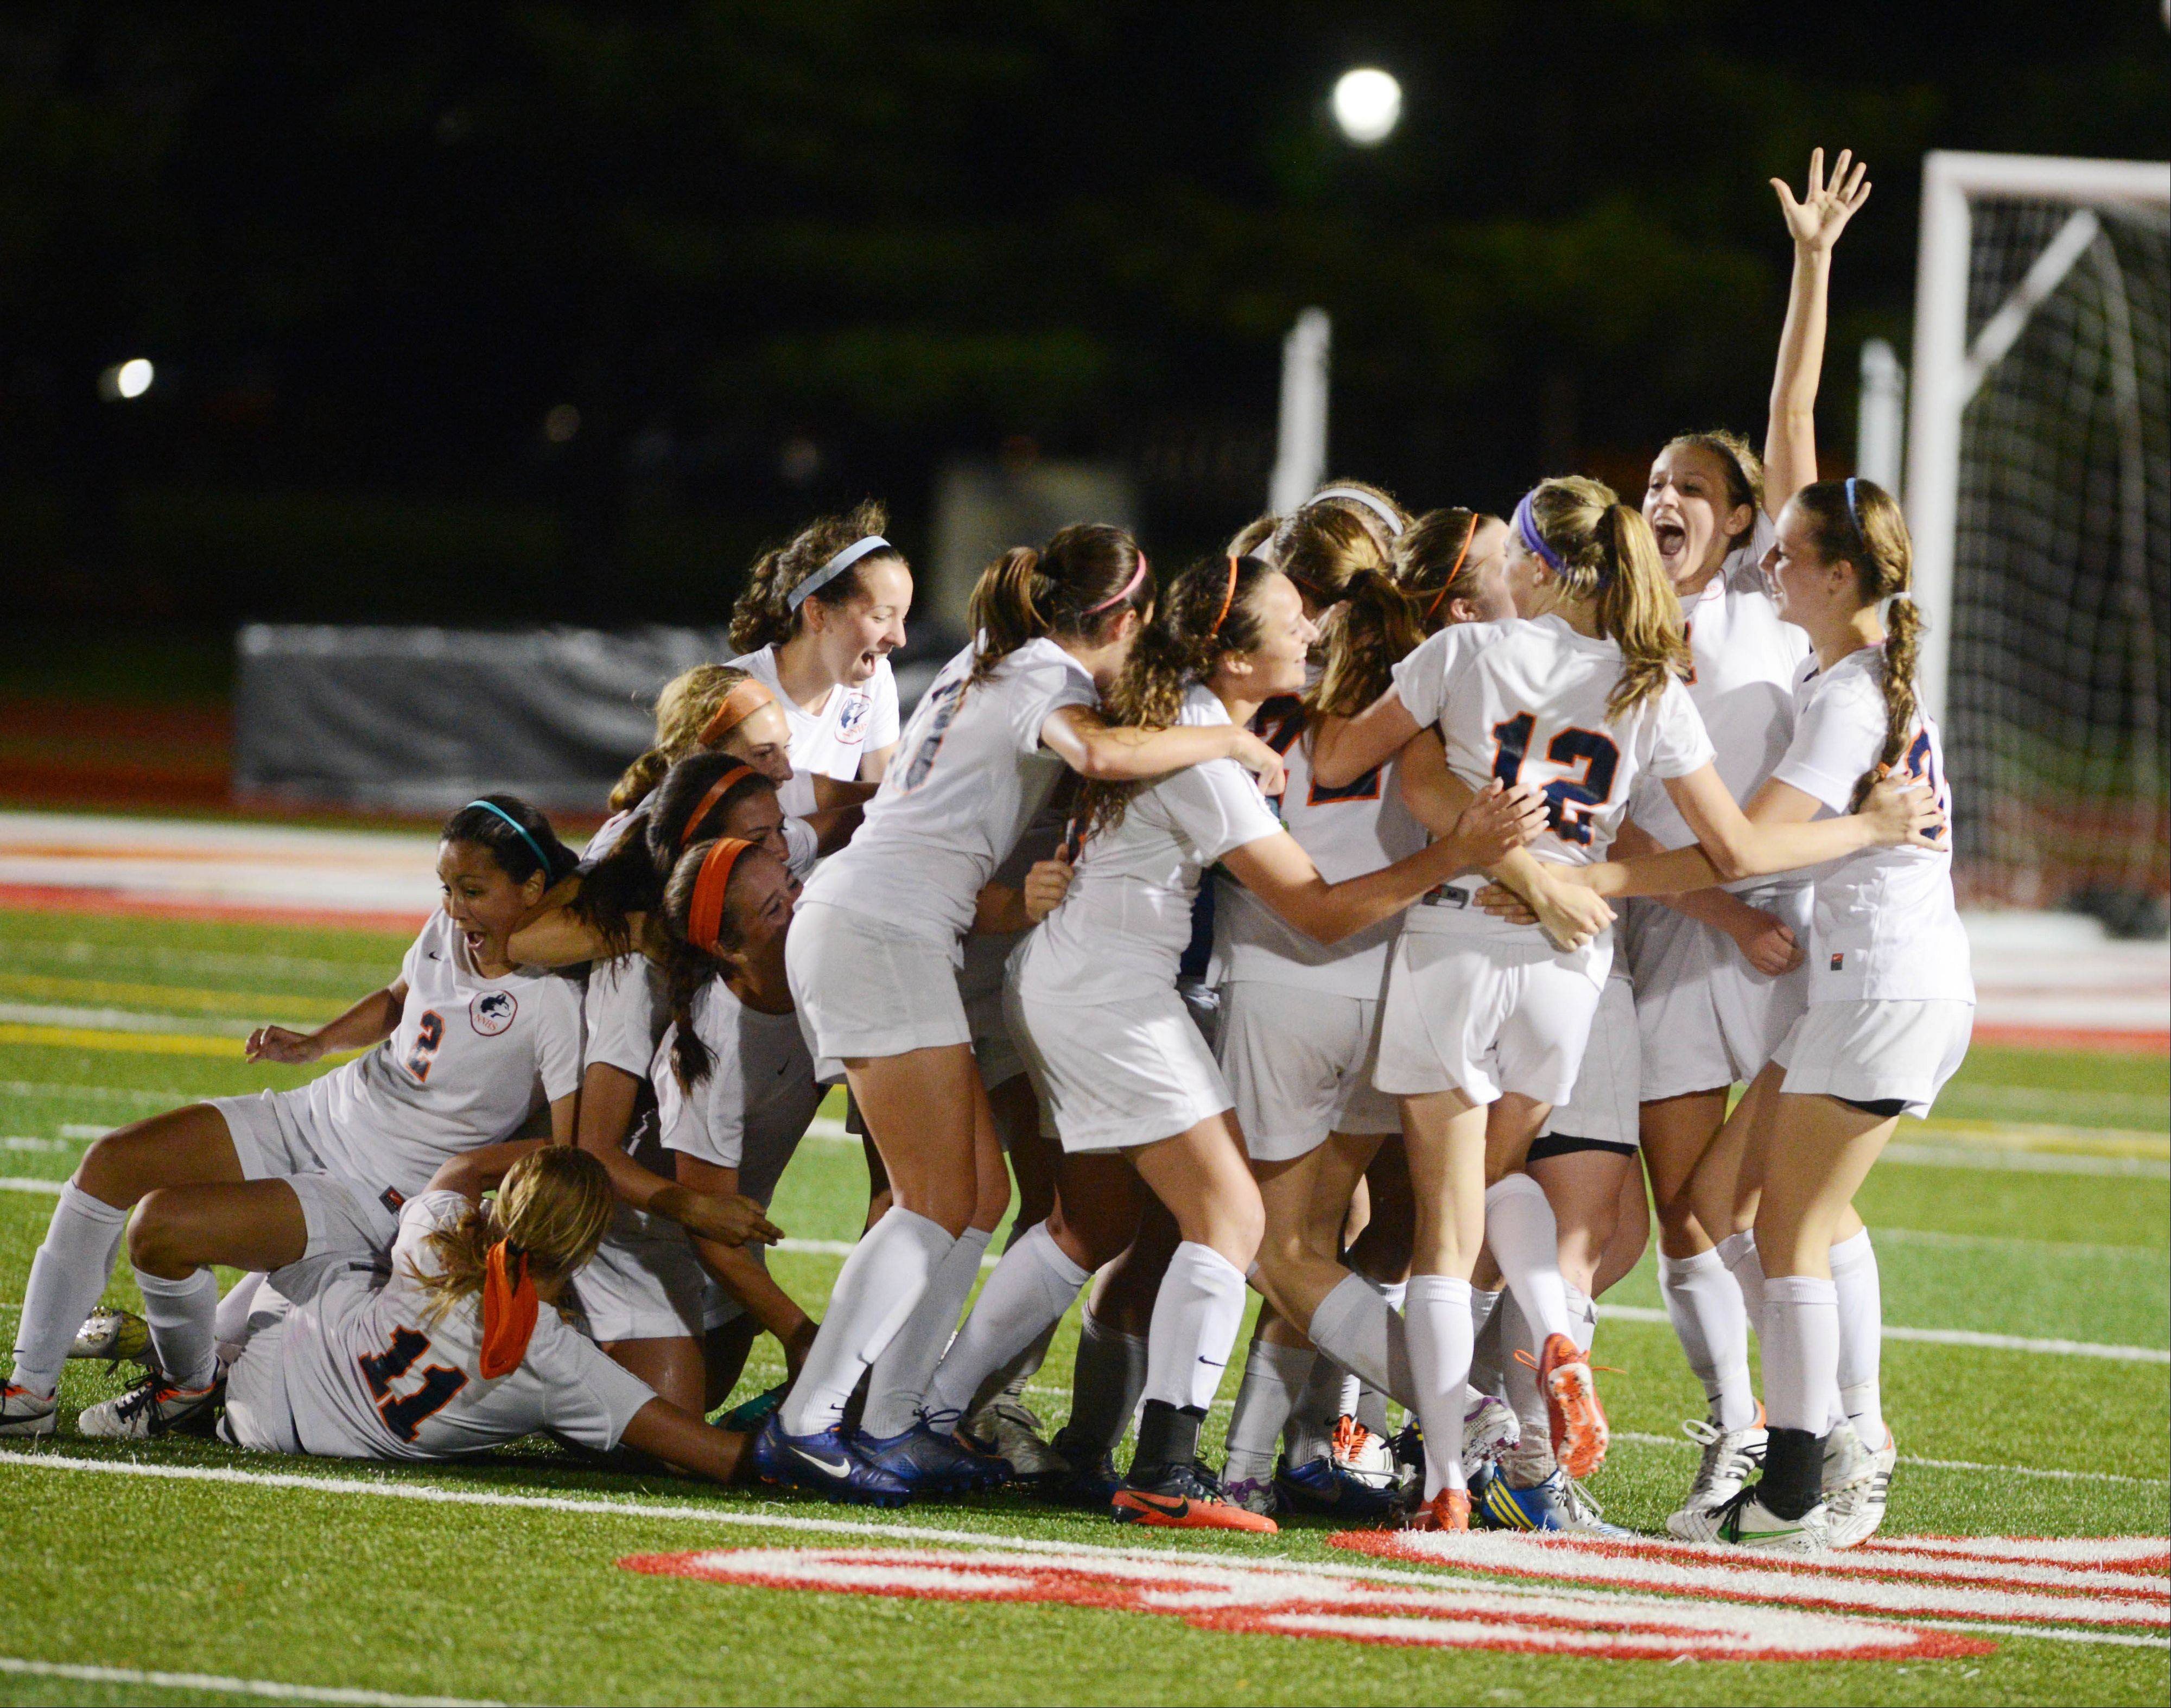 Naperville North celebrates their big win at the Class 3A girls soccer championship match in Naperville Saturday.